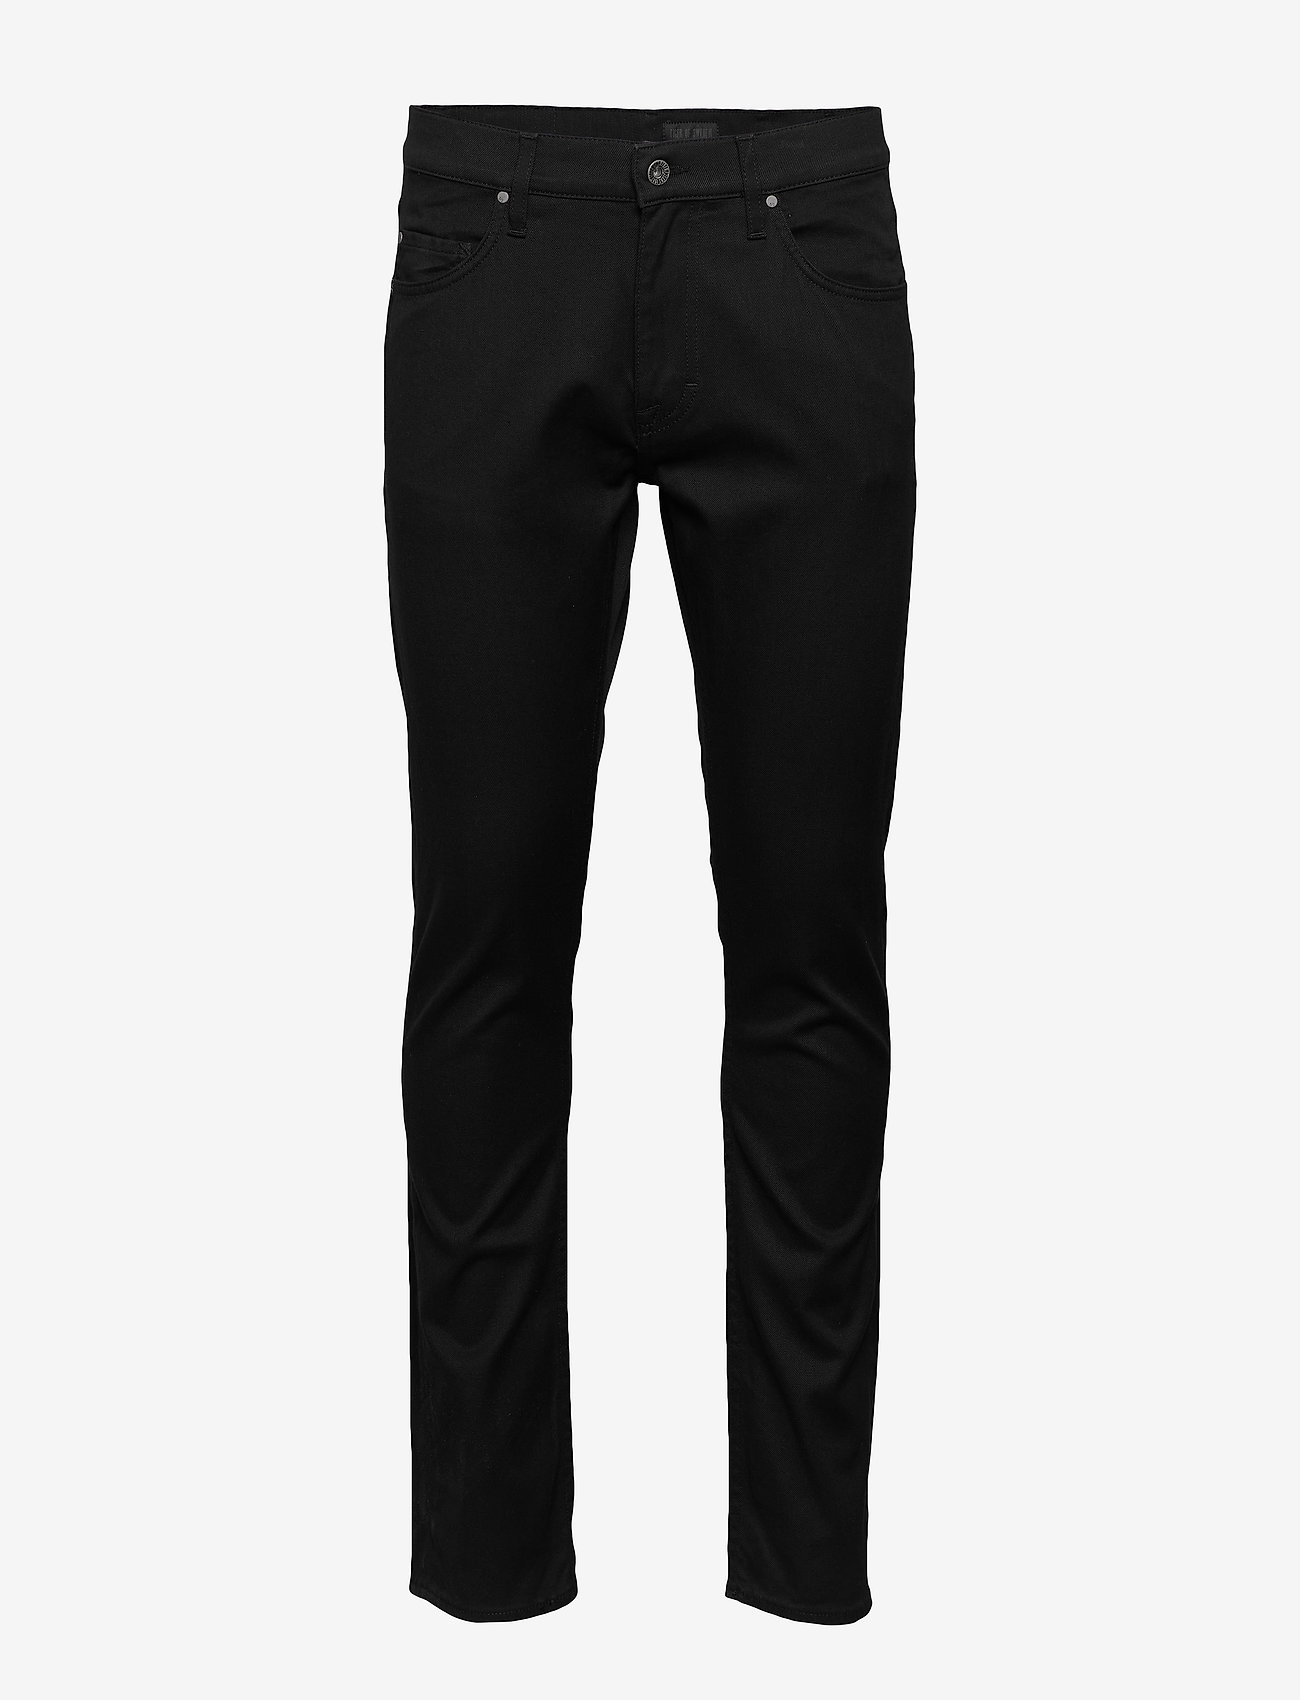 Tiger of Sweden Jeans - PISTOLERO - relaxed jeans - black